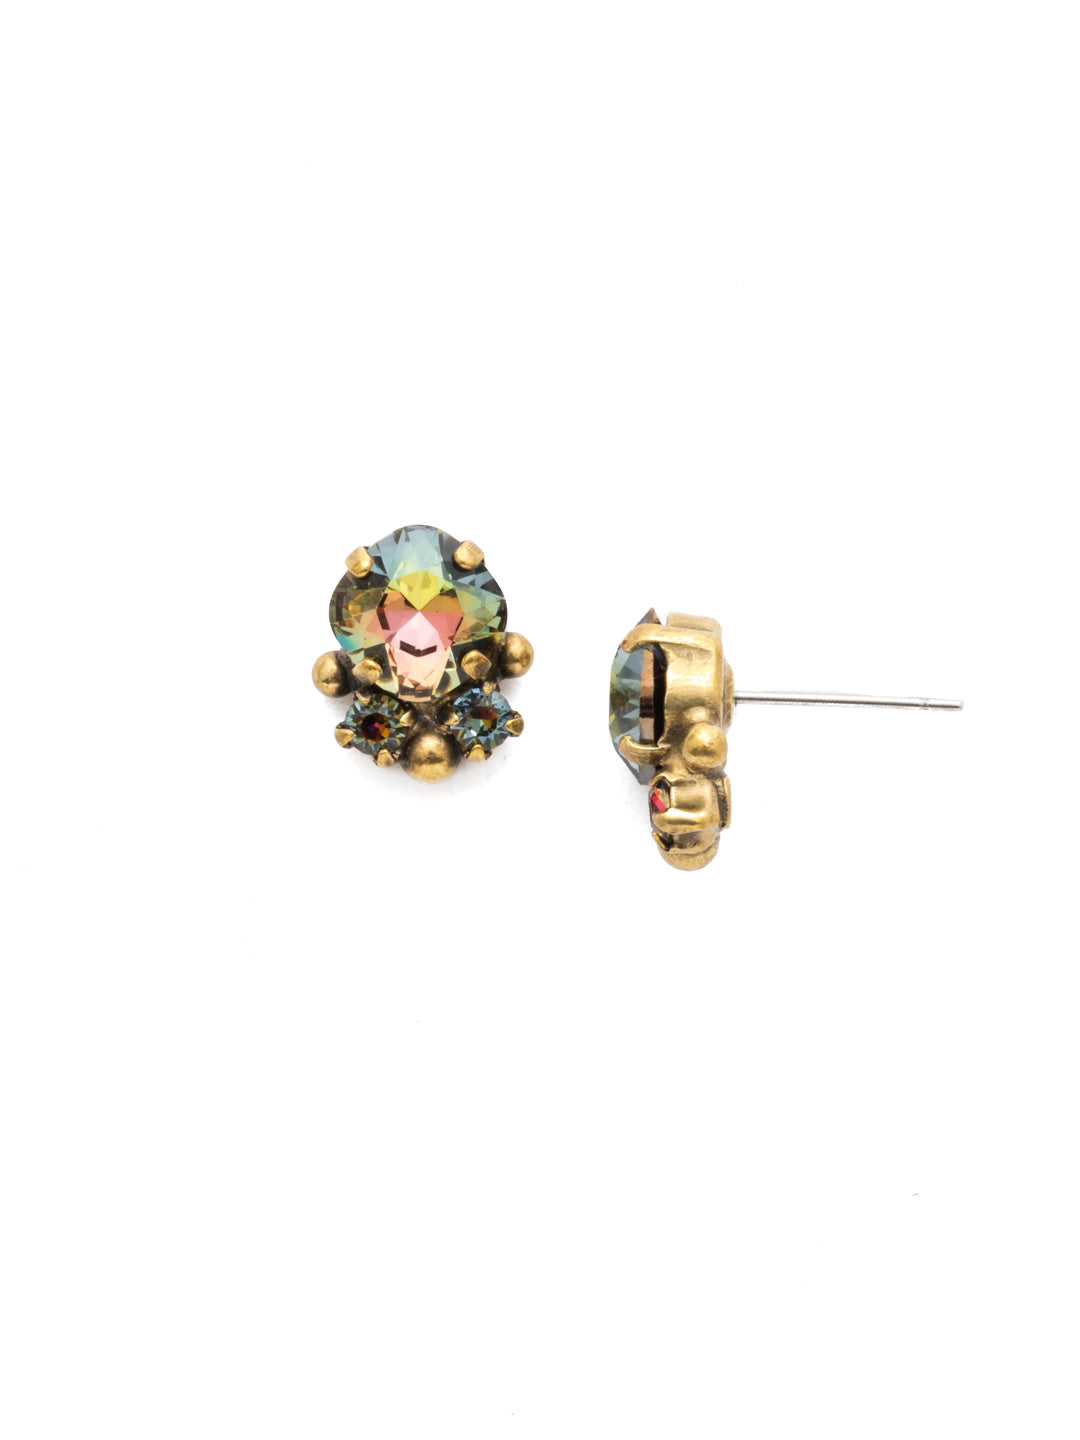 Embellished Cushion Cut Stud Earring - EDN73AGVO